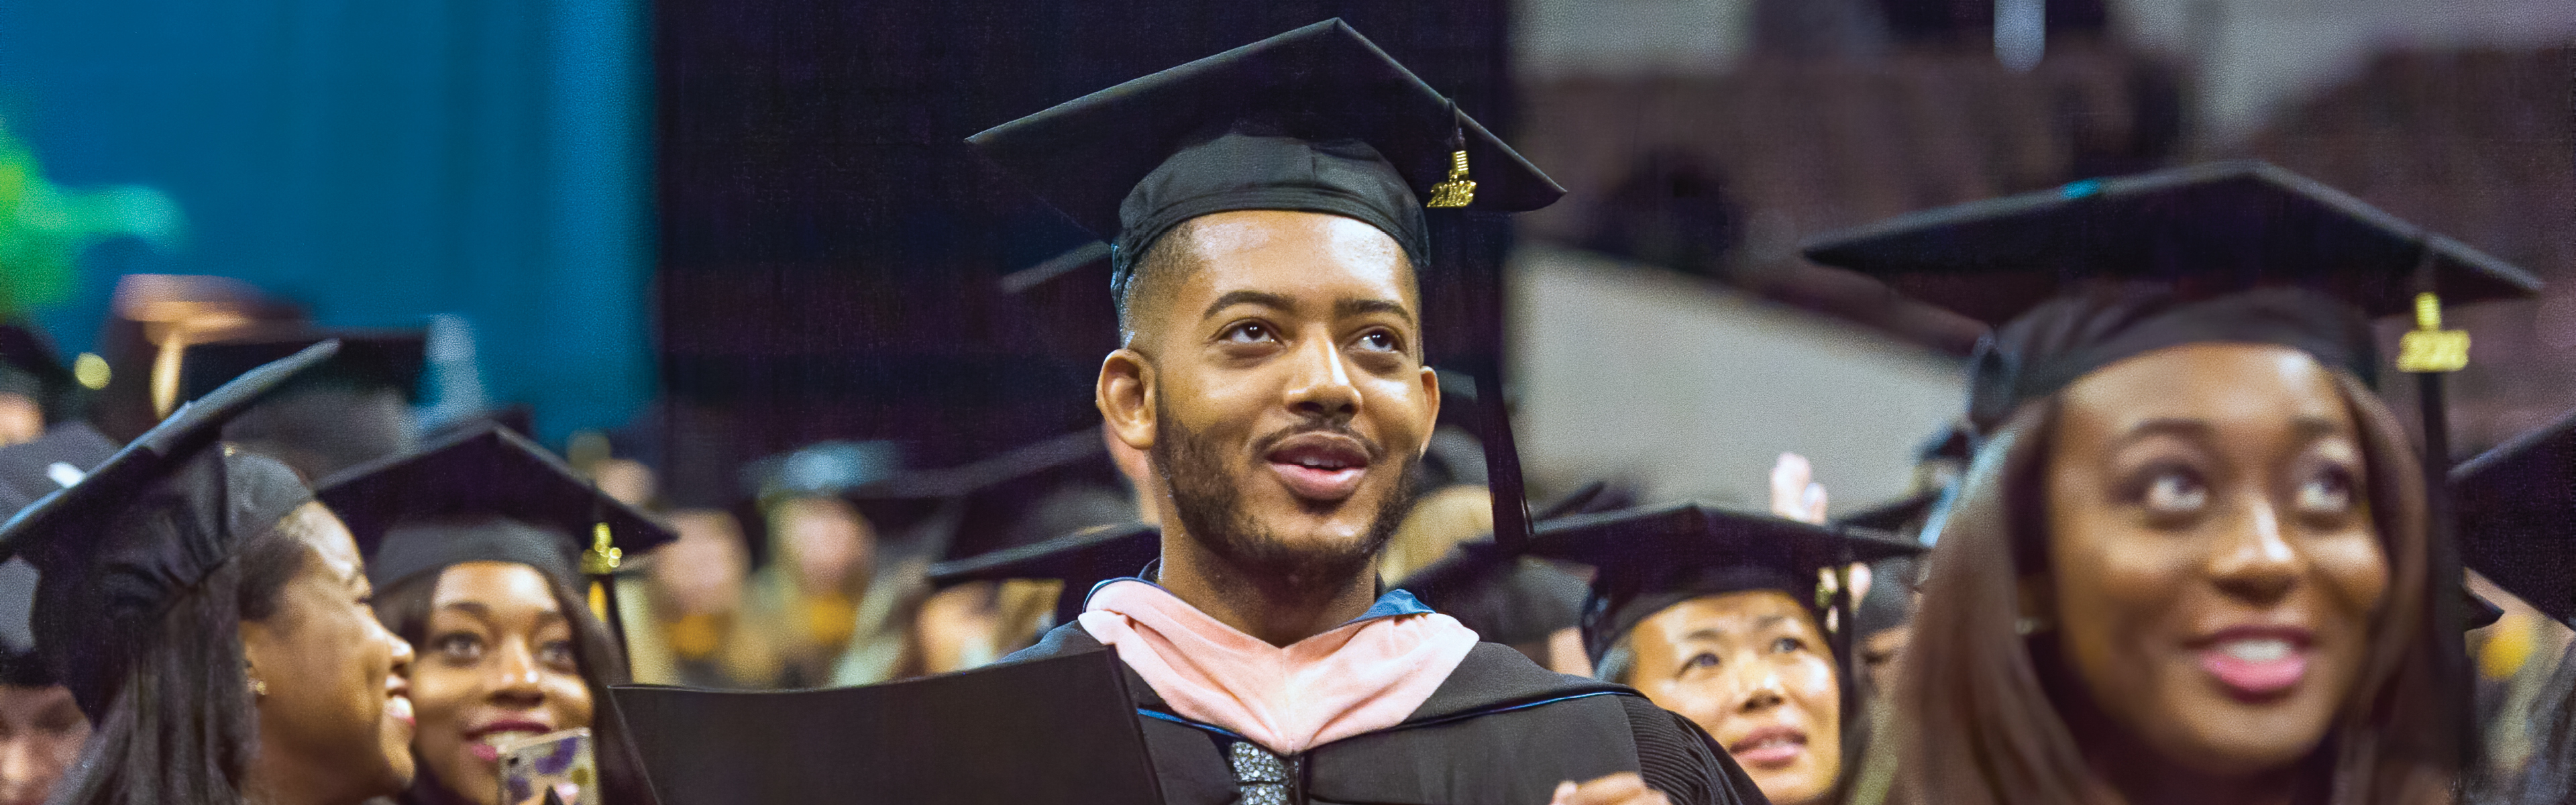 A group of diverse students at an EVMS Commencement ceremony. The figure in focus is a Black male graduate in cap and gown with a hopeful expression.